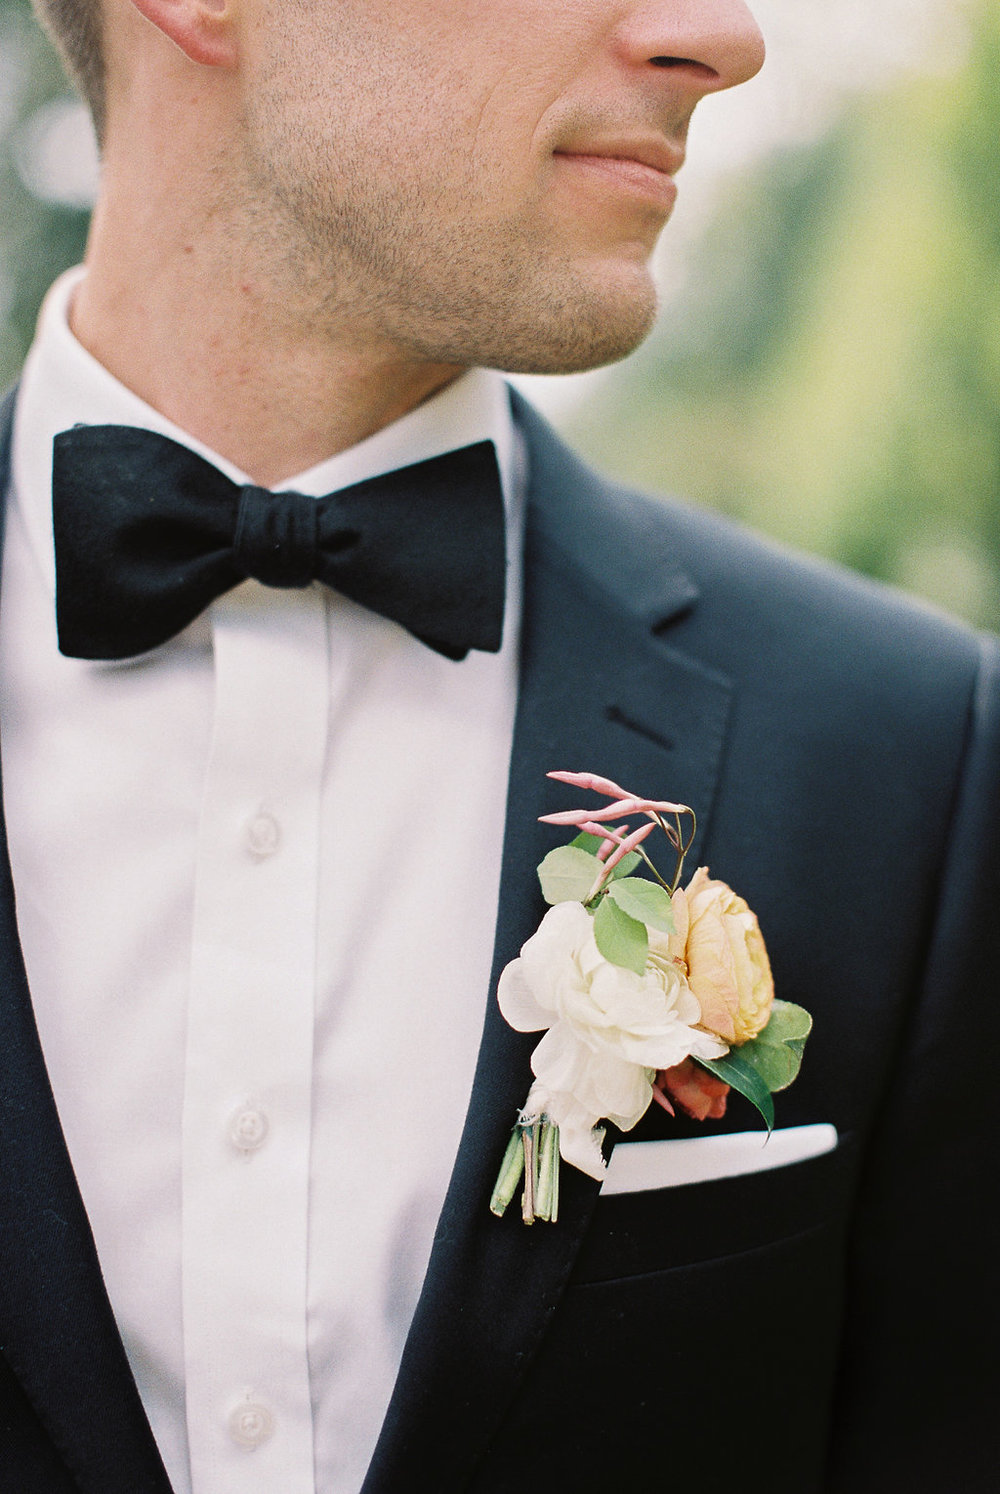 detail-of-simple-groom-boutonniere.jpg